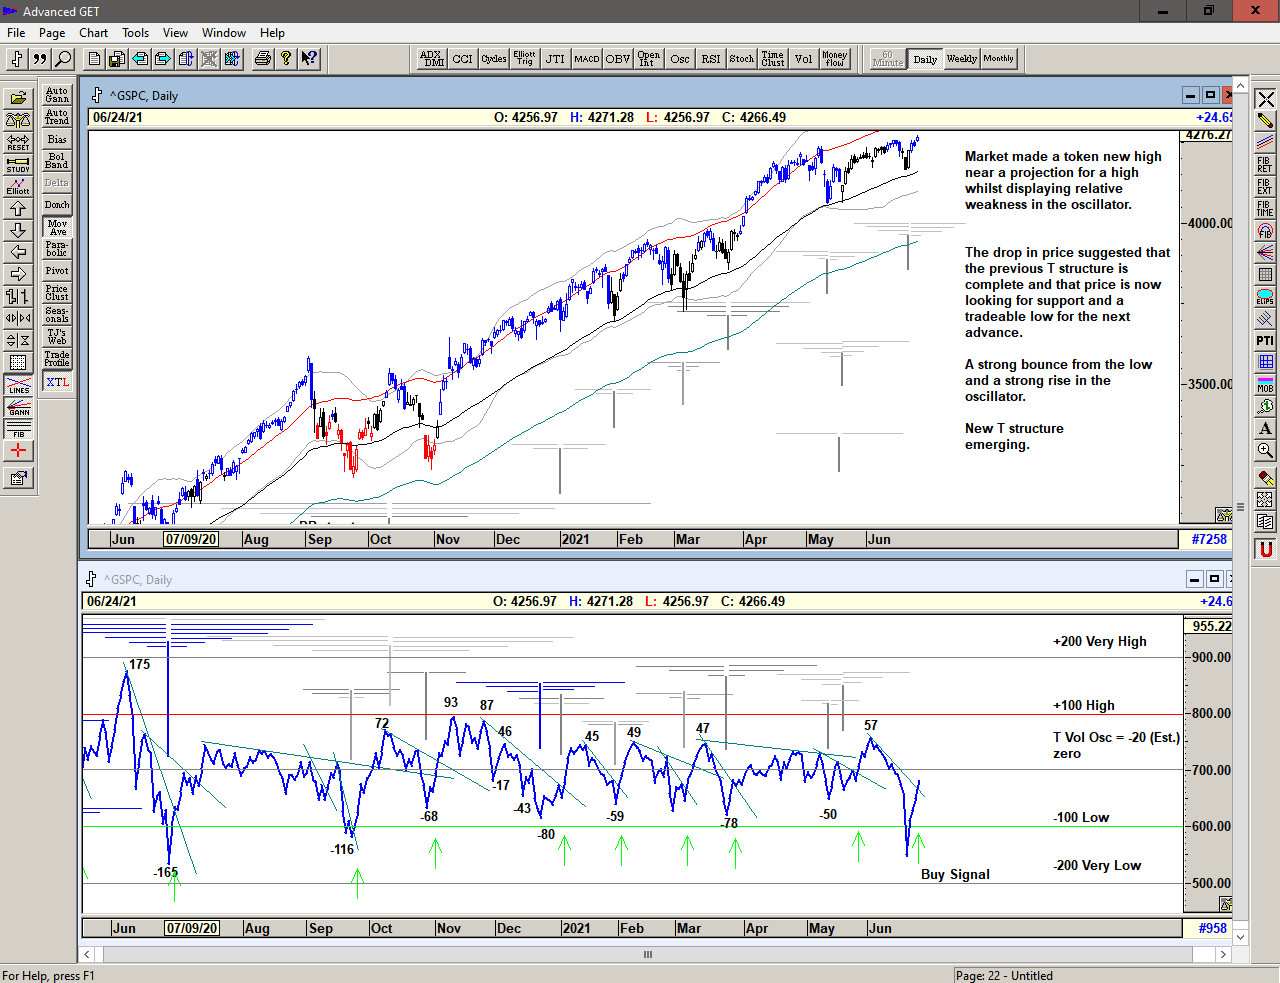 Chart of S&P 500 with T volume oscillator for 28 June 2021